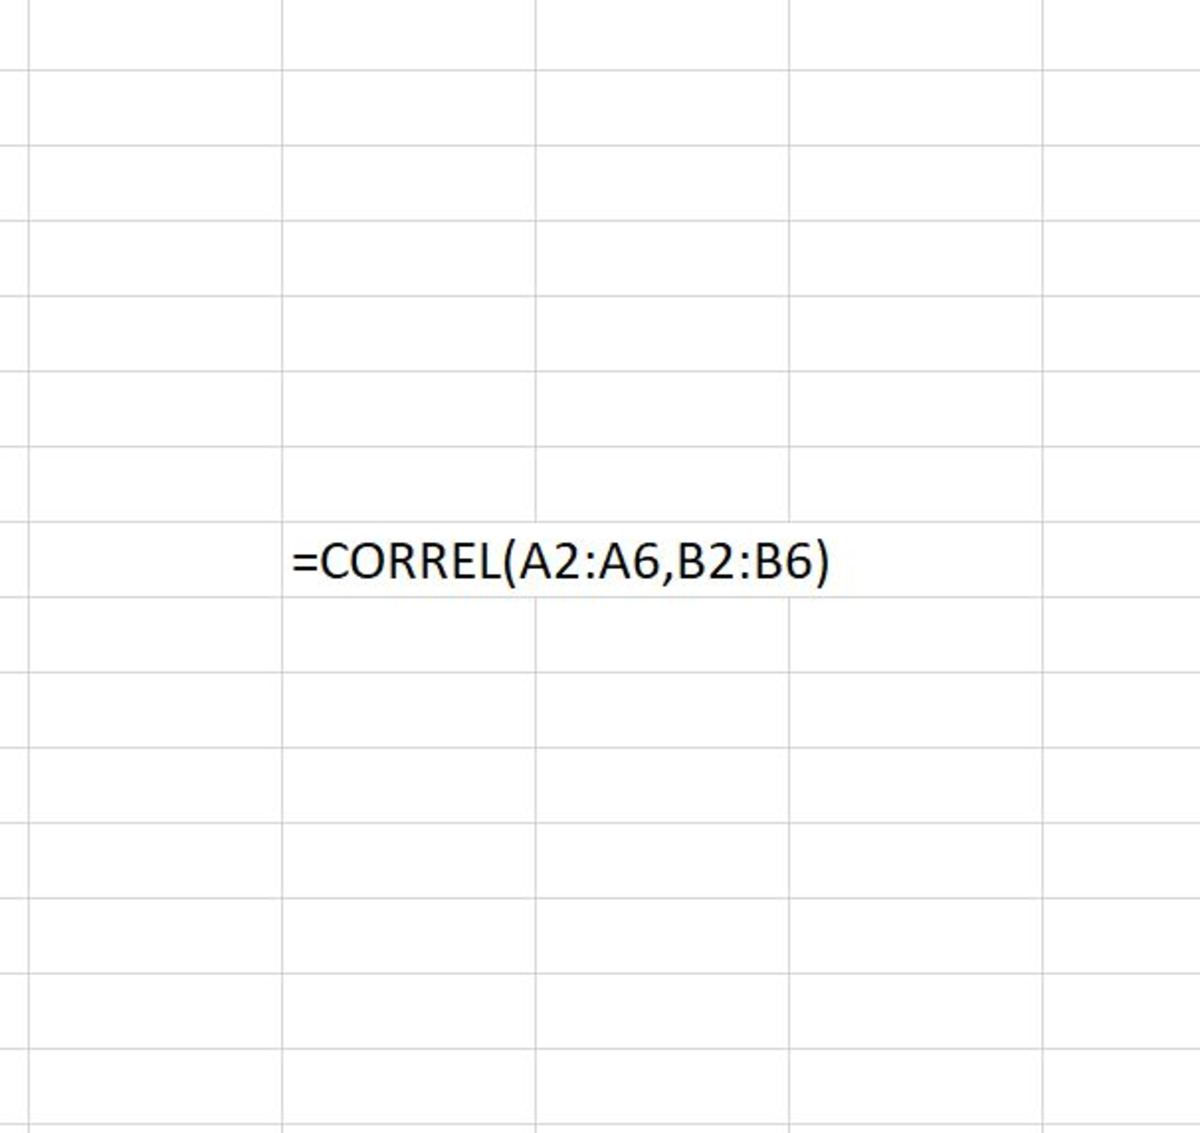 How to Use the CORREL Function in Excel